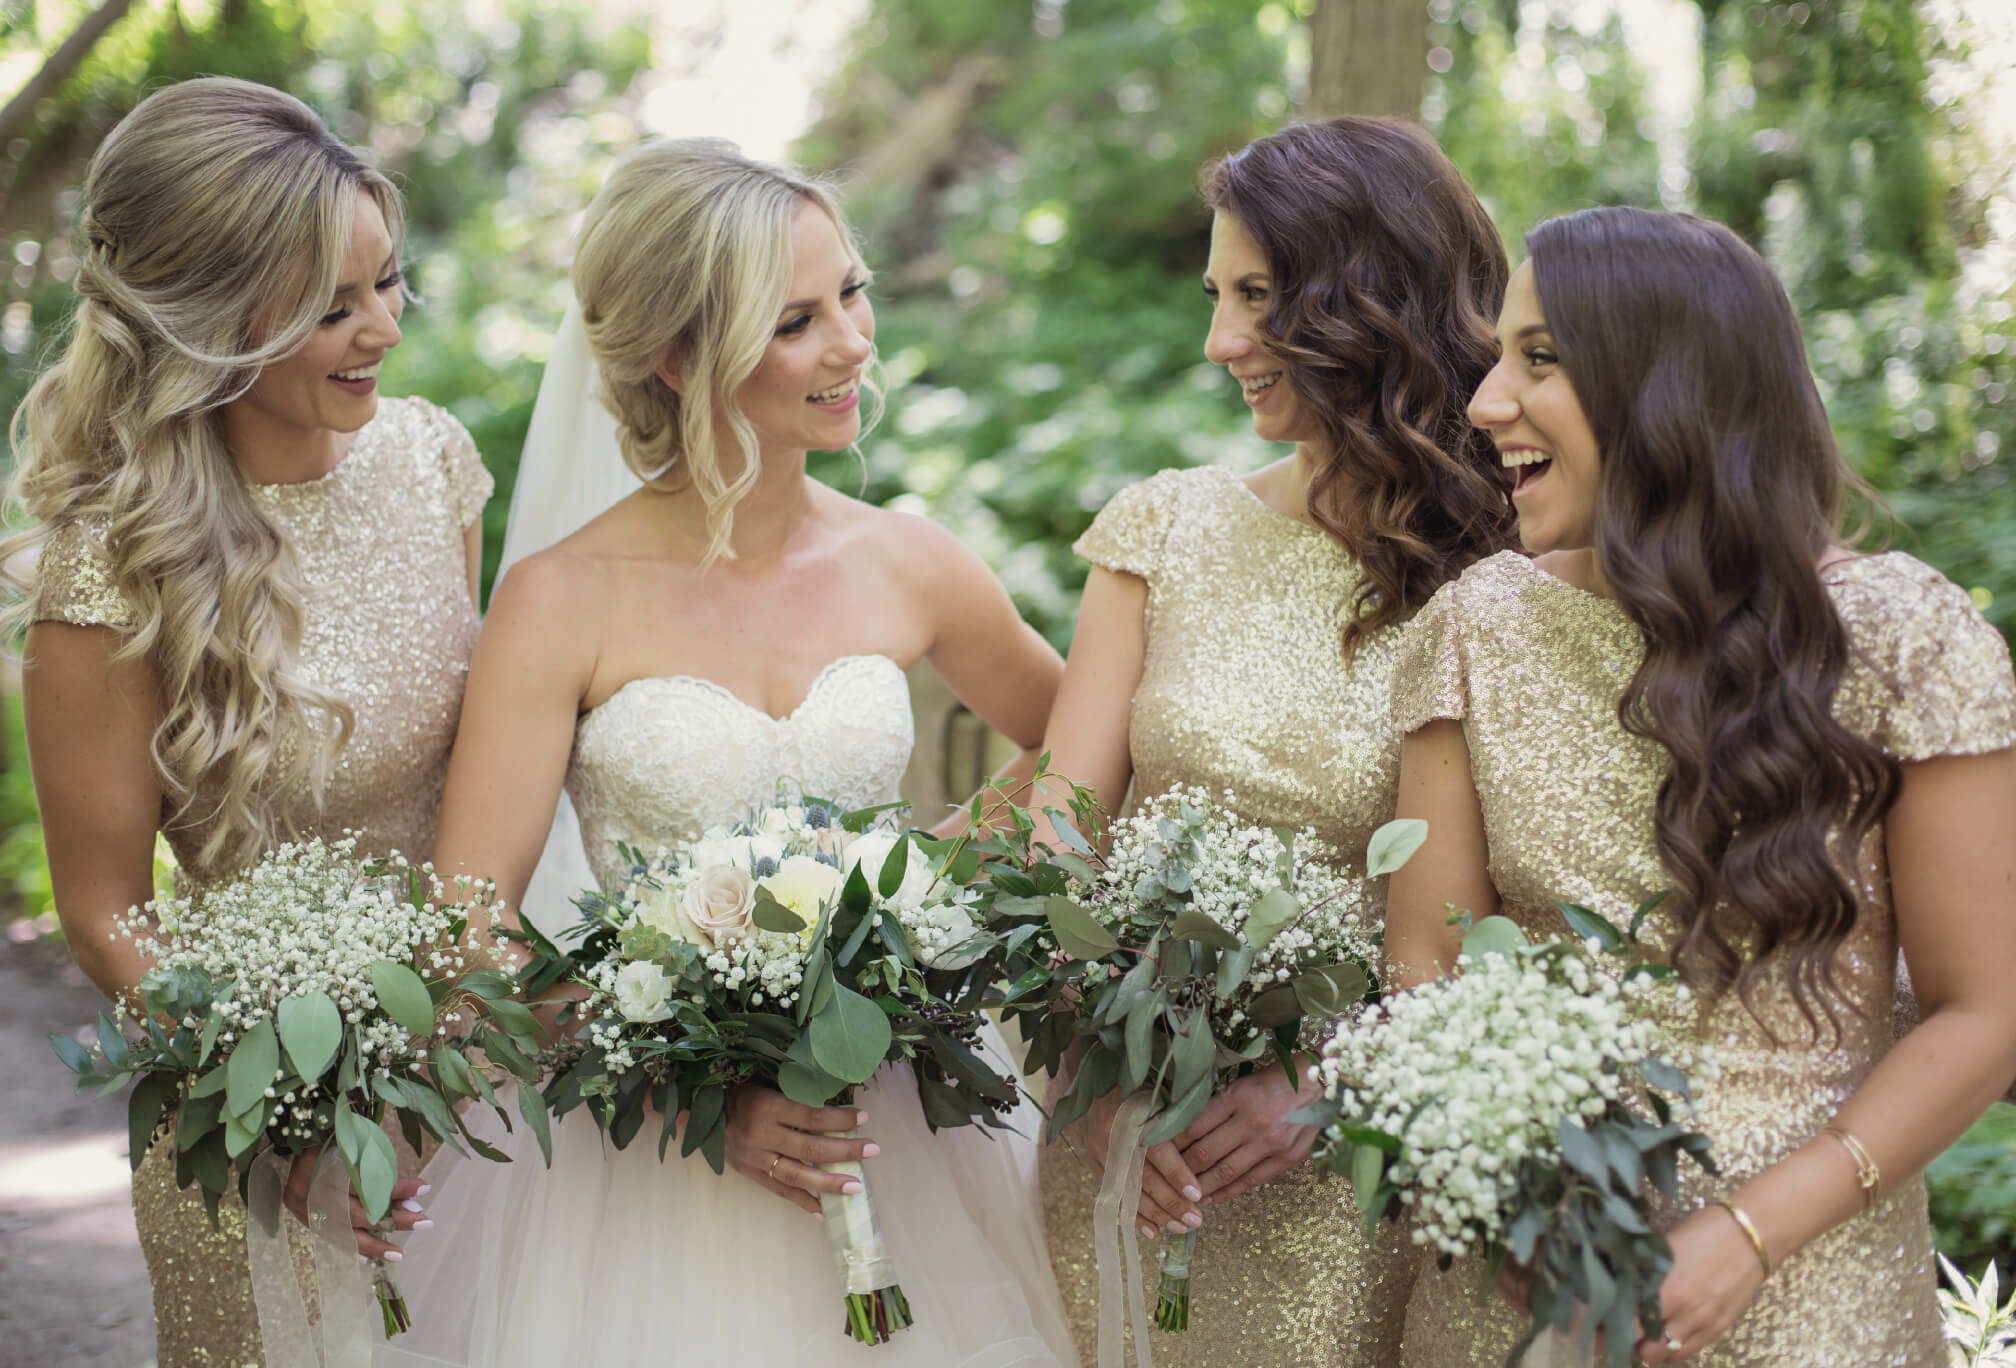 candid moments with bridesmaids